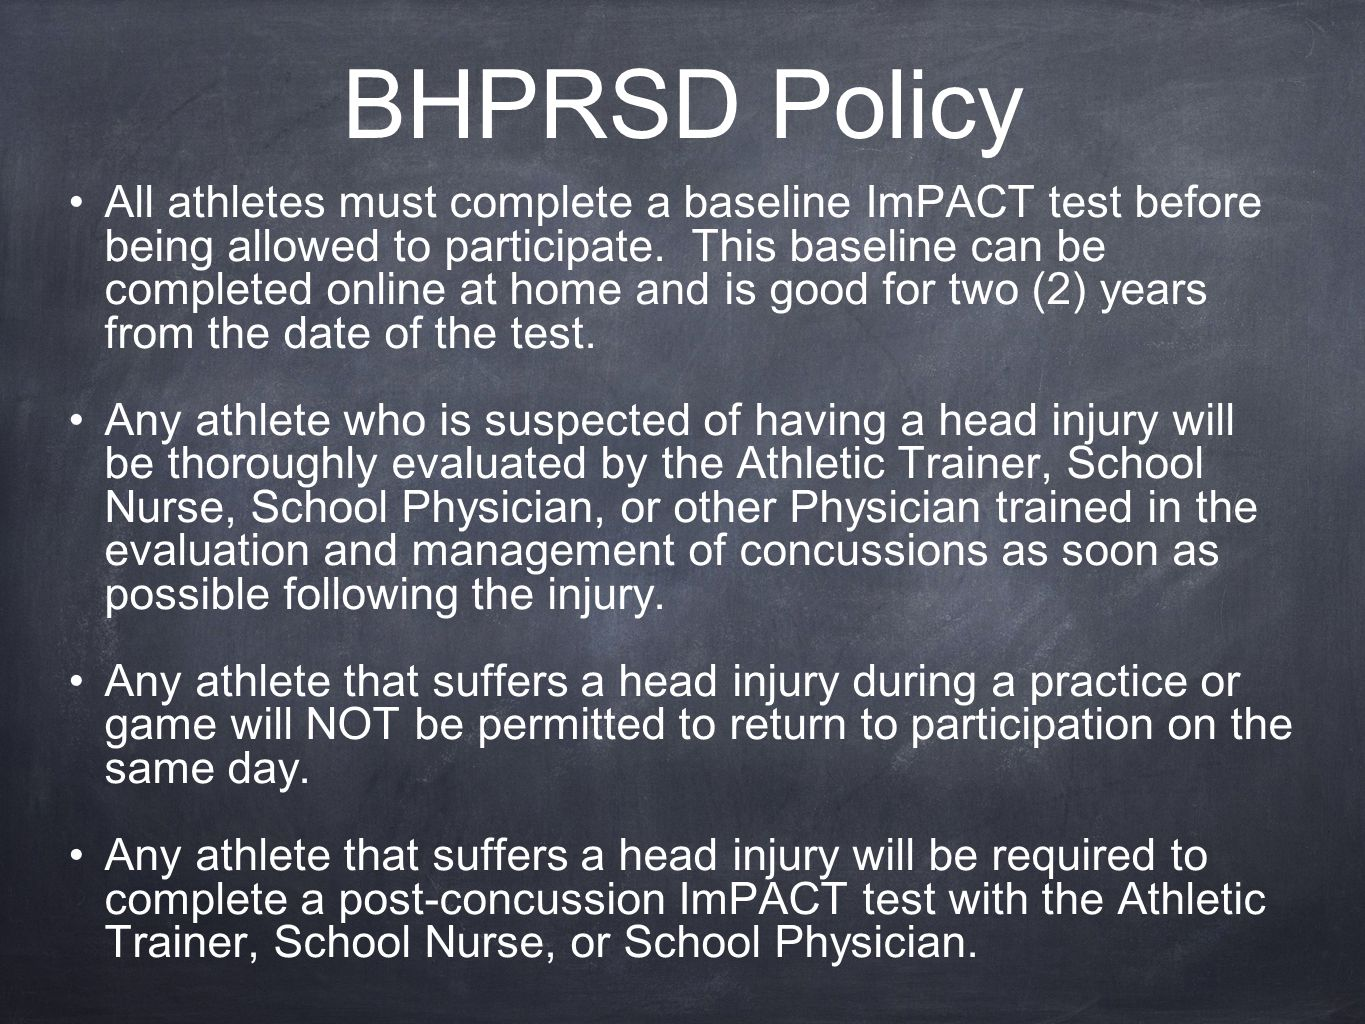 BHPRSD Policy All athletes must complete a baseline ImPACT test before being allowed to participate. This baseline can be completed online at home and